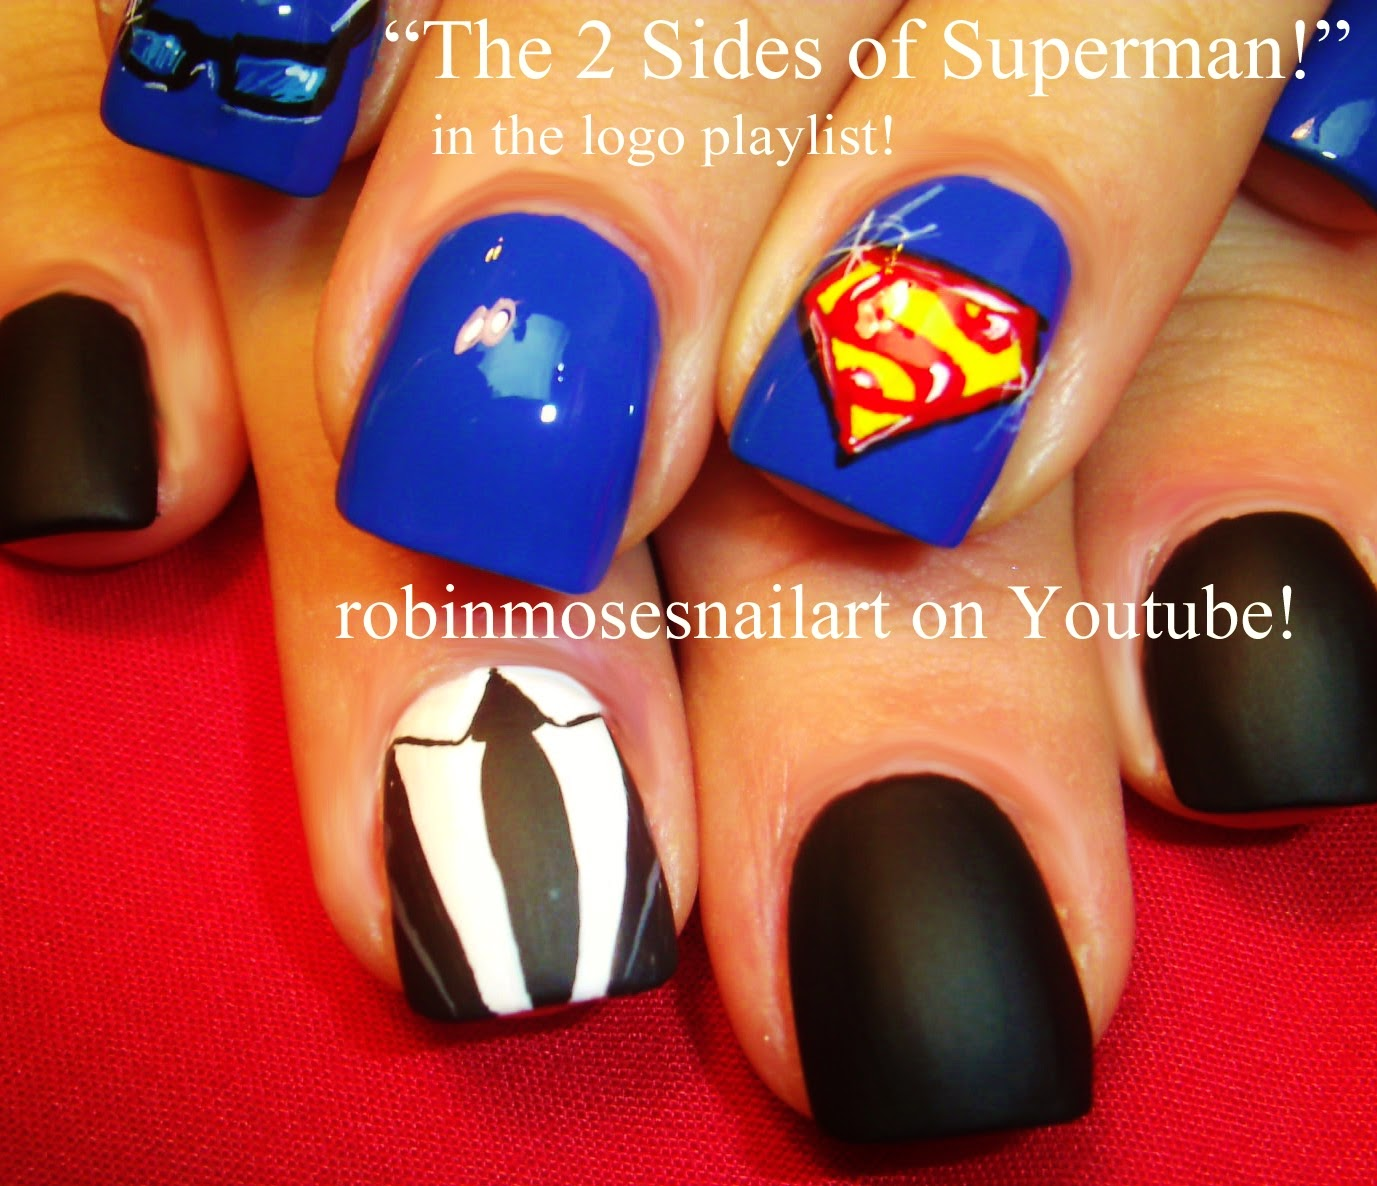 Robin moses nail art nail art superman nail art superman nail art superman nail art superman nails matte black nails super hero nails cartoon nails how to cartoon nail art cartoon nail art gallery prinsesfo Gallery